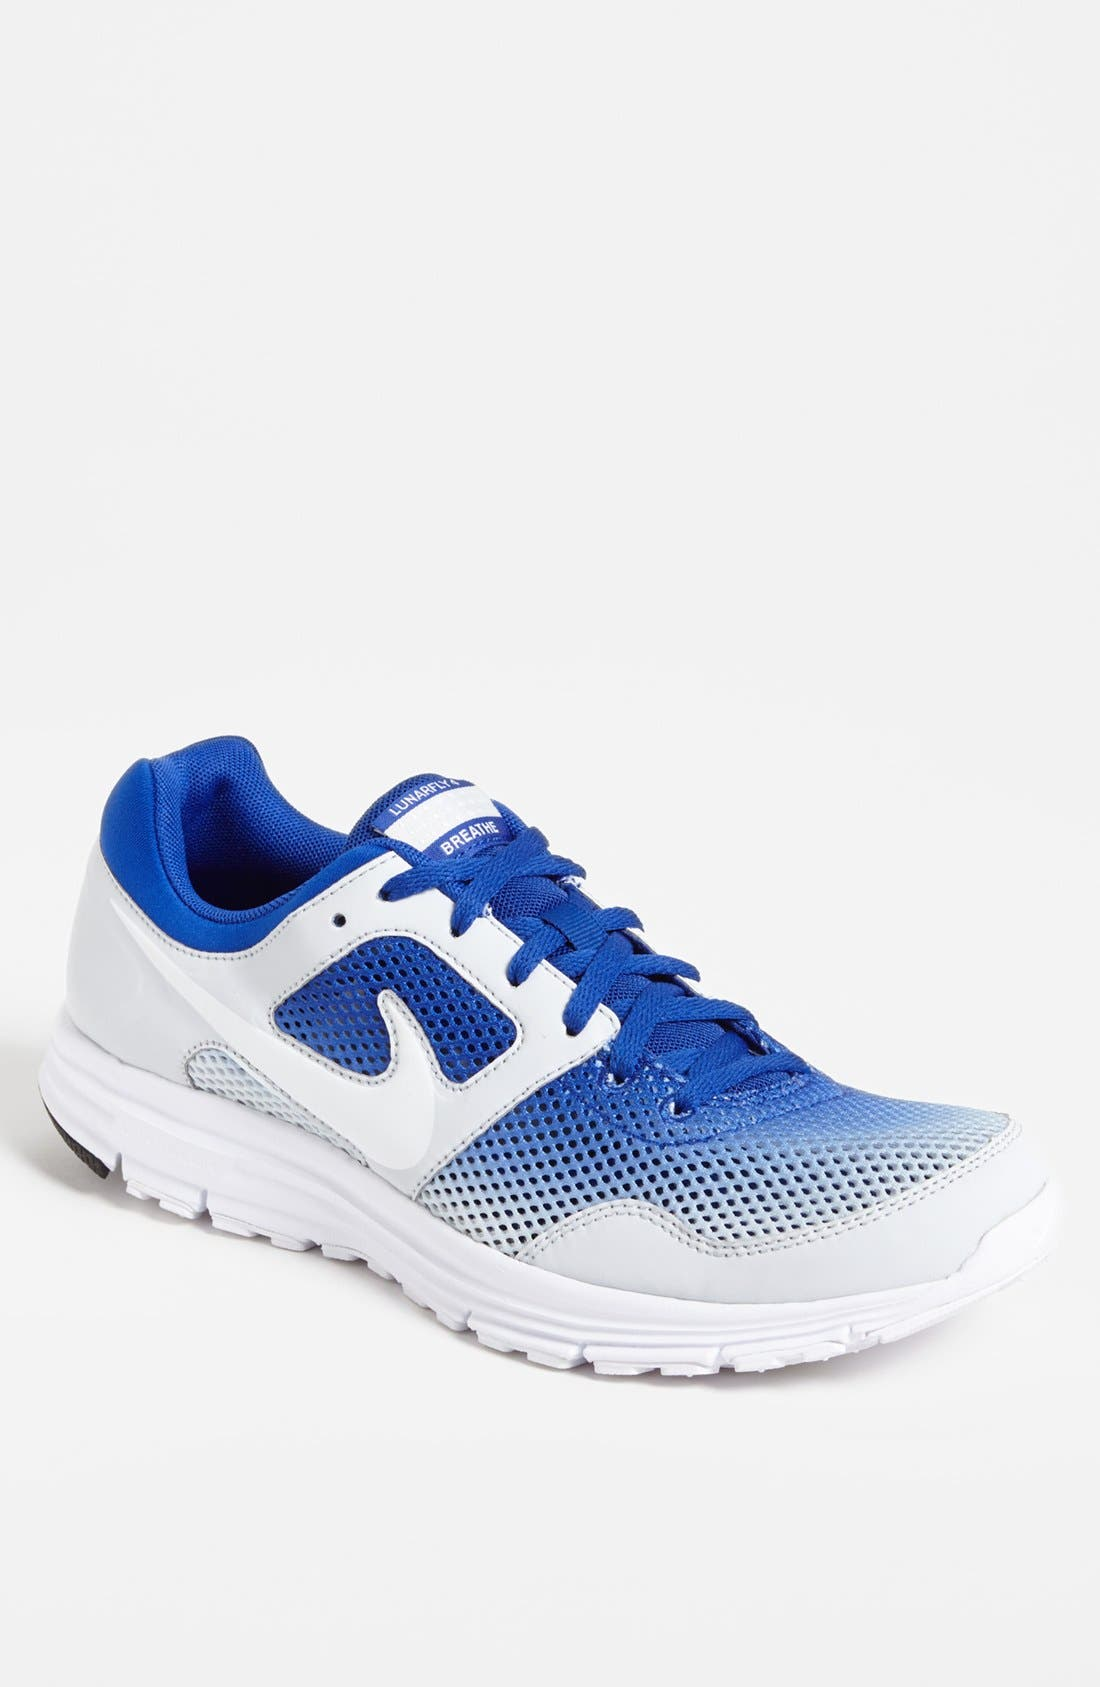 Main Image - Nike 'Lunarfly+ 4 Breathe' Running Shoe (Men)